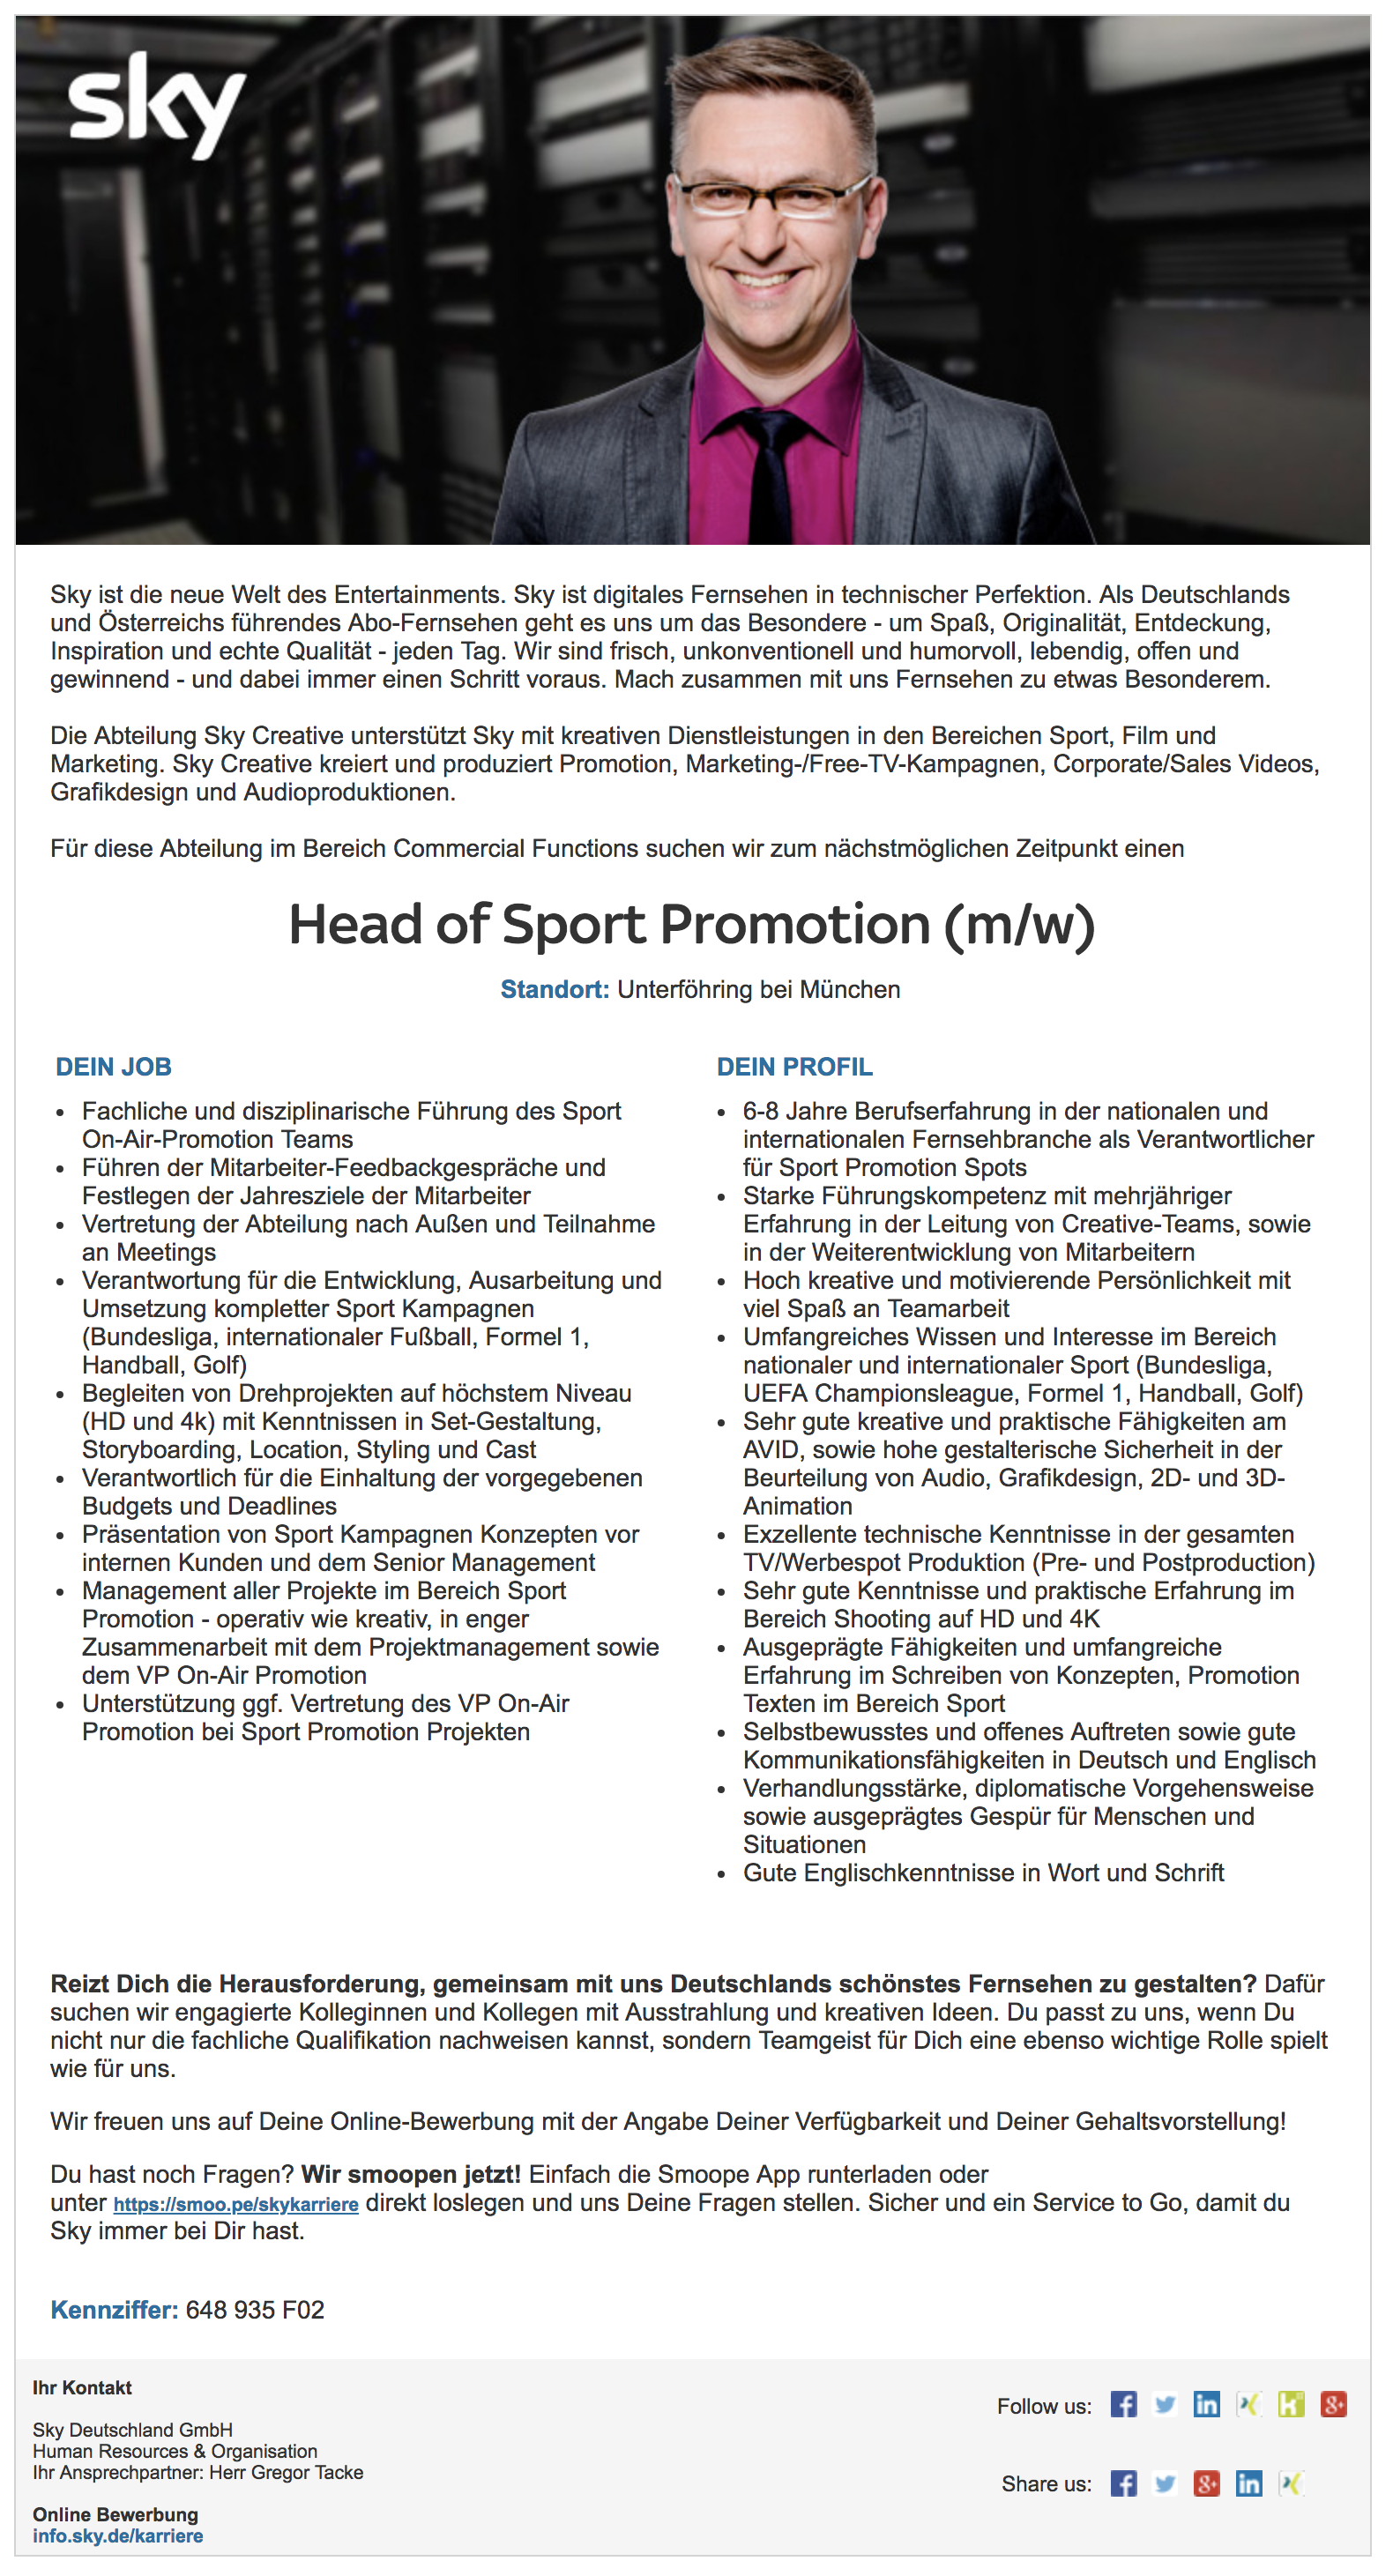 Head of Sport Promotion (m/w)